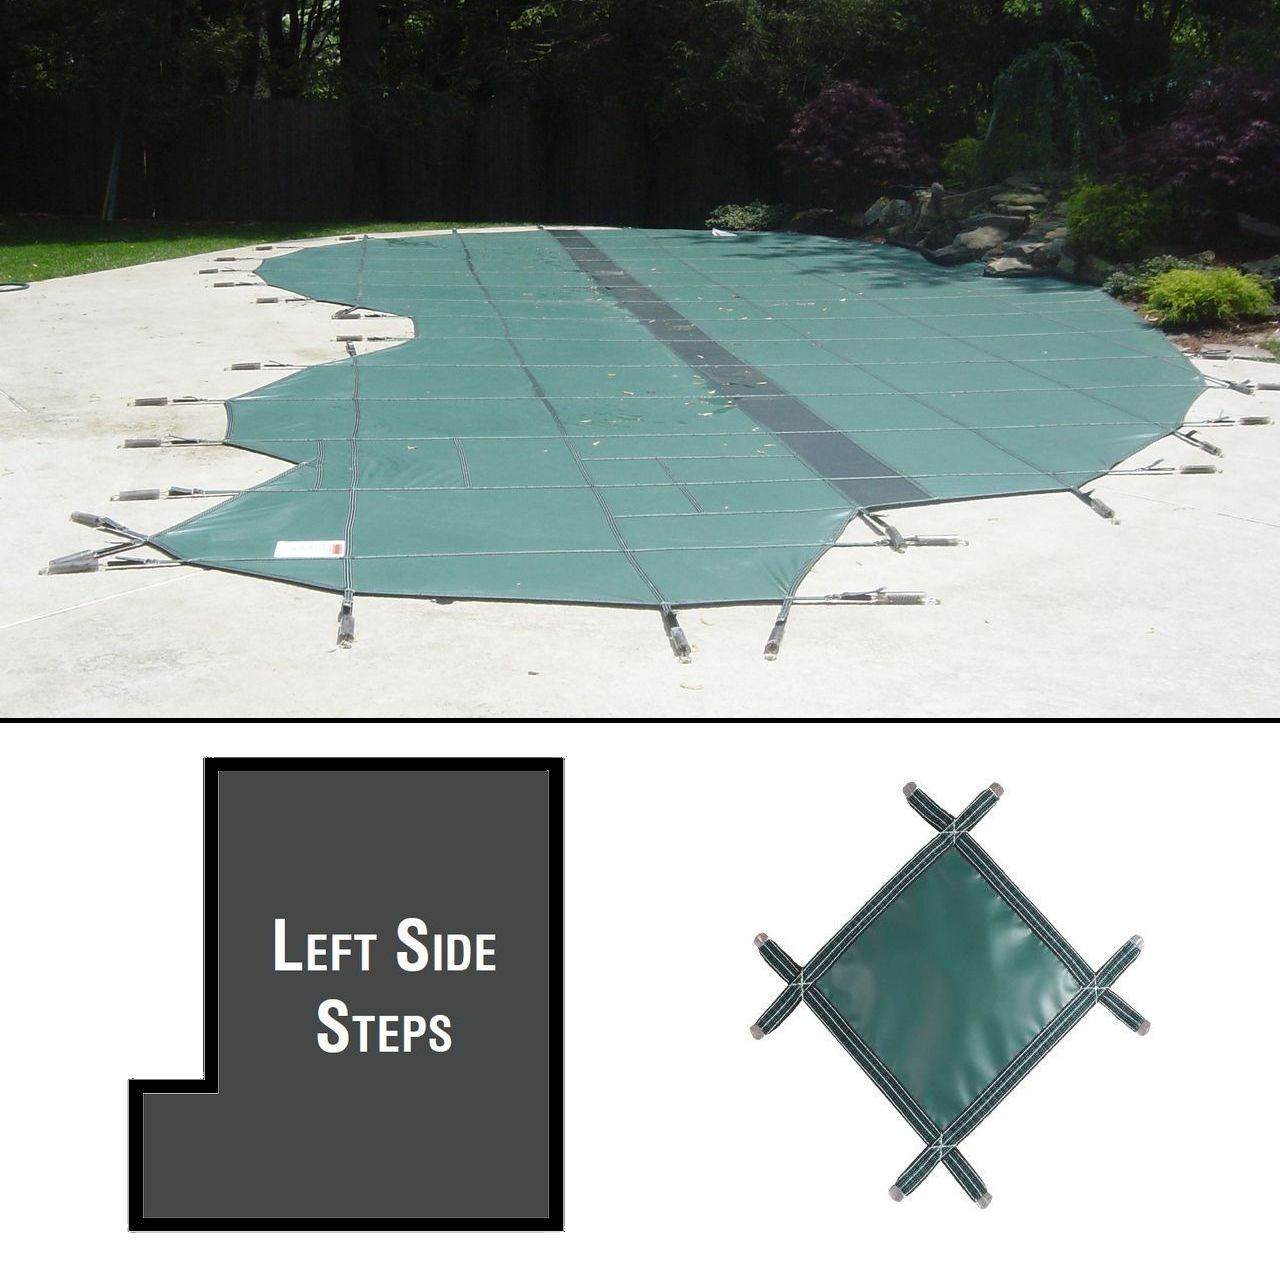 PermaGuard 22'x42' Rectangular Pool Cover With 4'x12' Left Side Steps